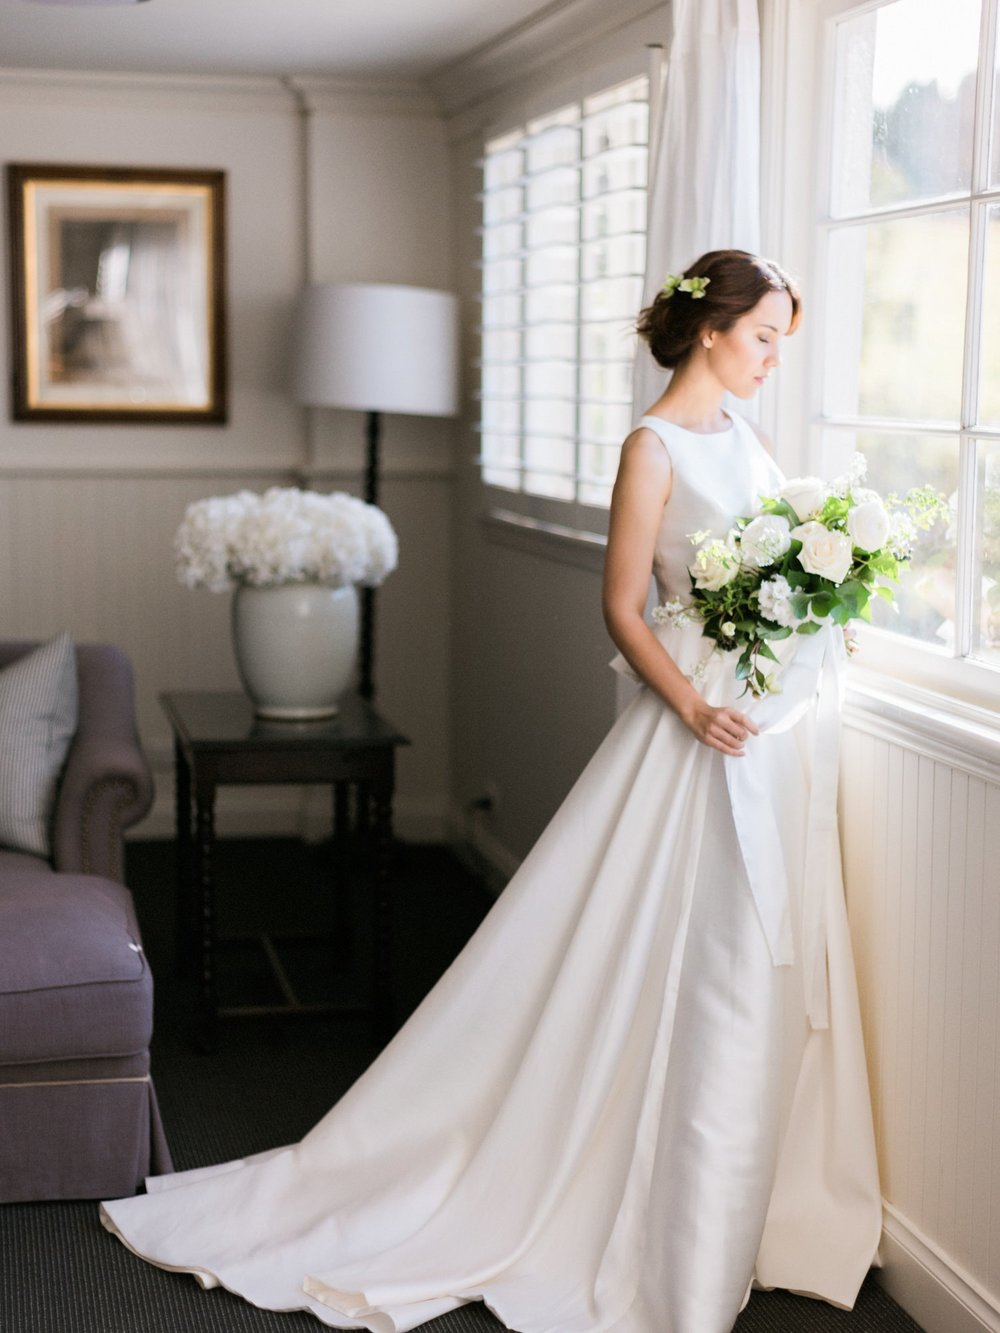 Studio Flora Co - Hopewood House - Rainy Day Weddings Shoot - The Terrace Lounge (The Pavilion - Upstairs) - Bride and Florals.jpg